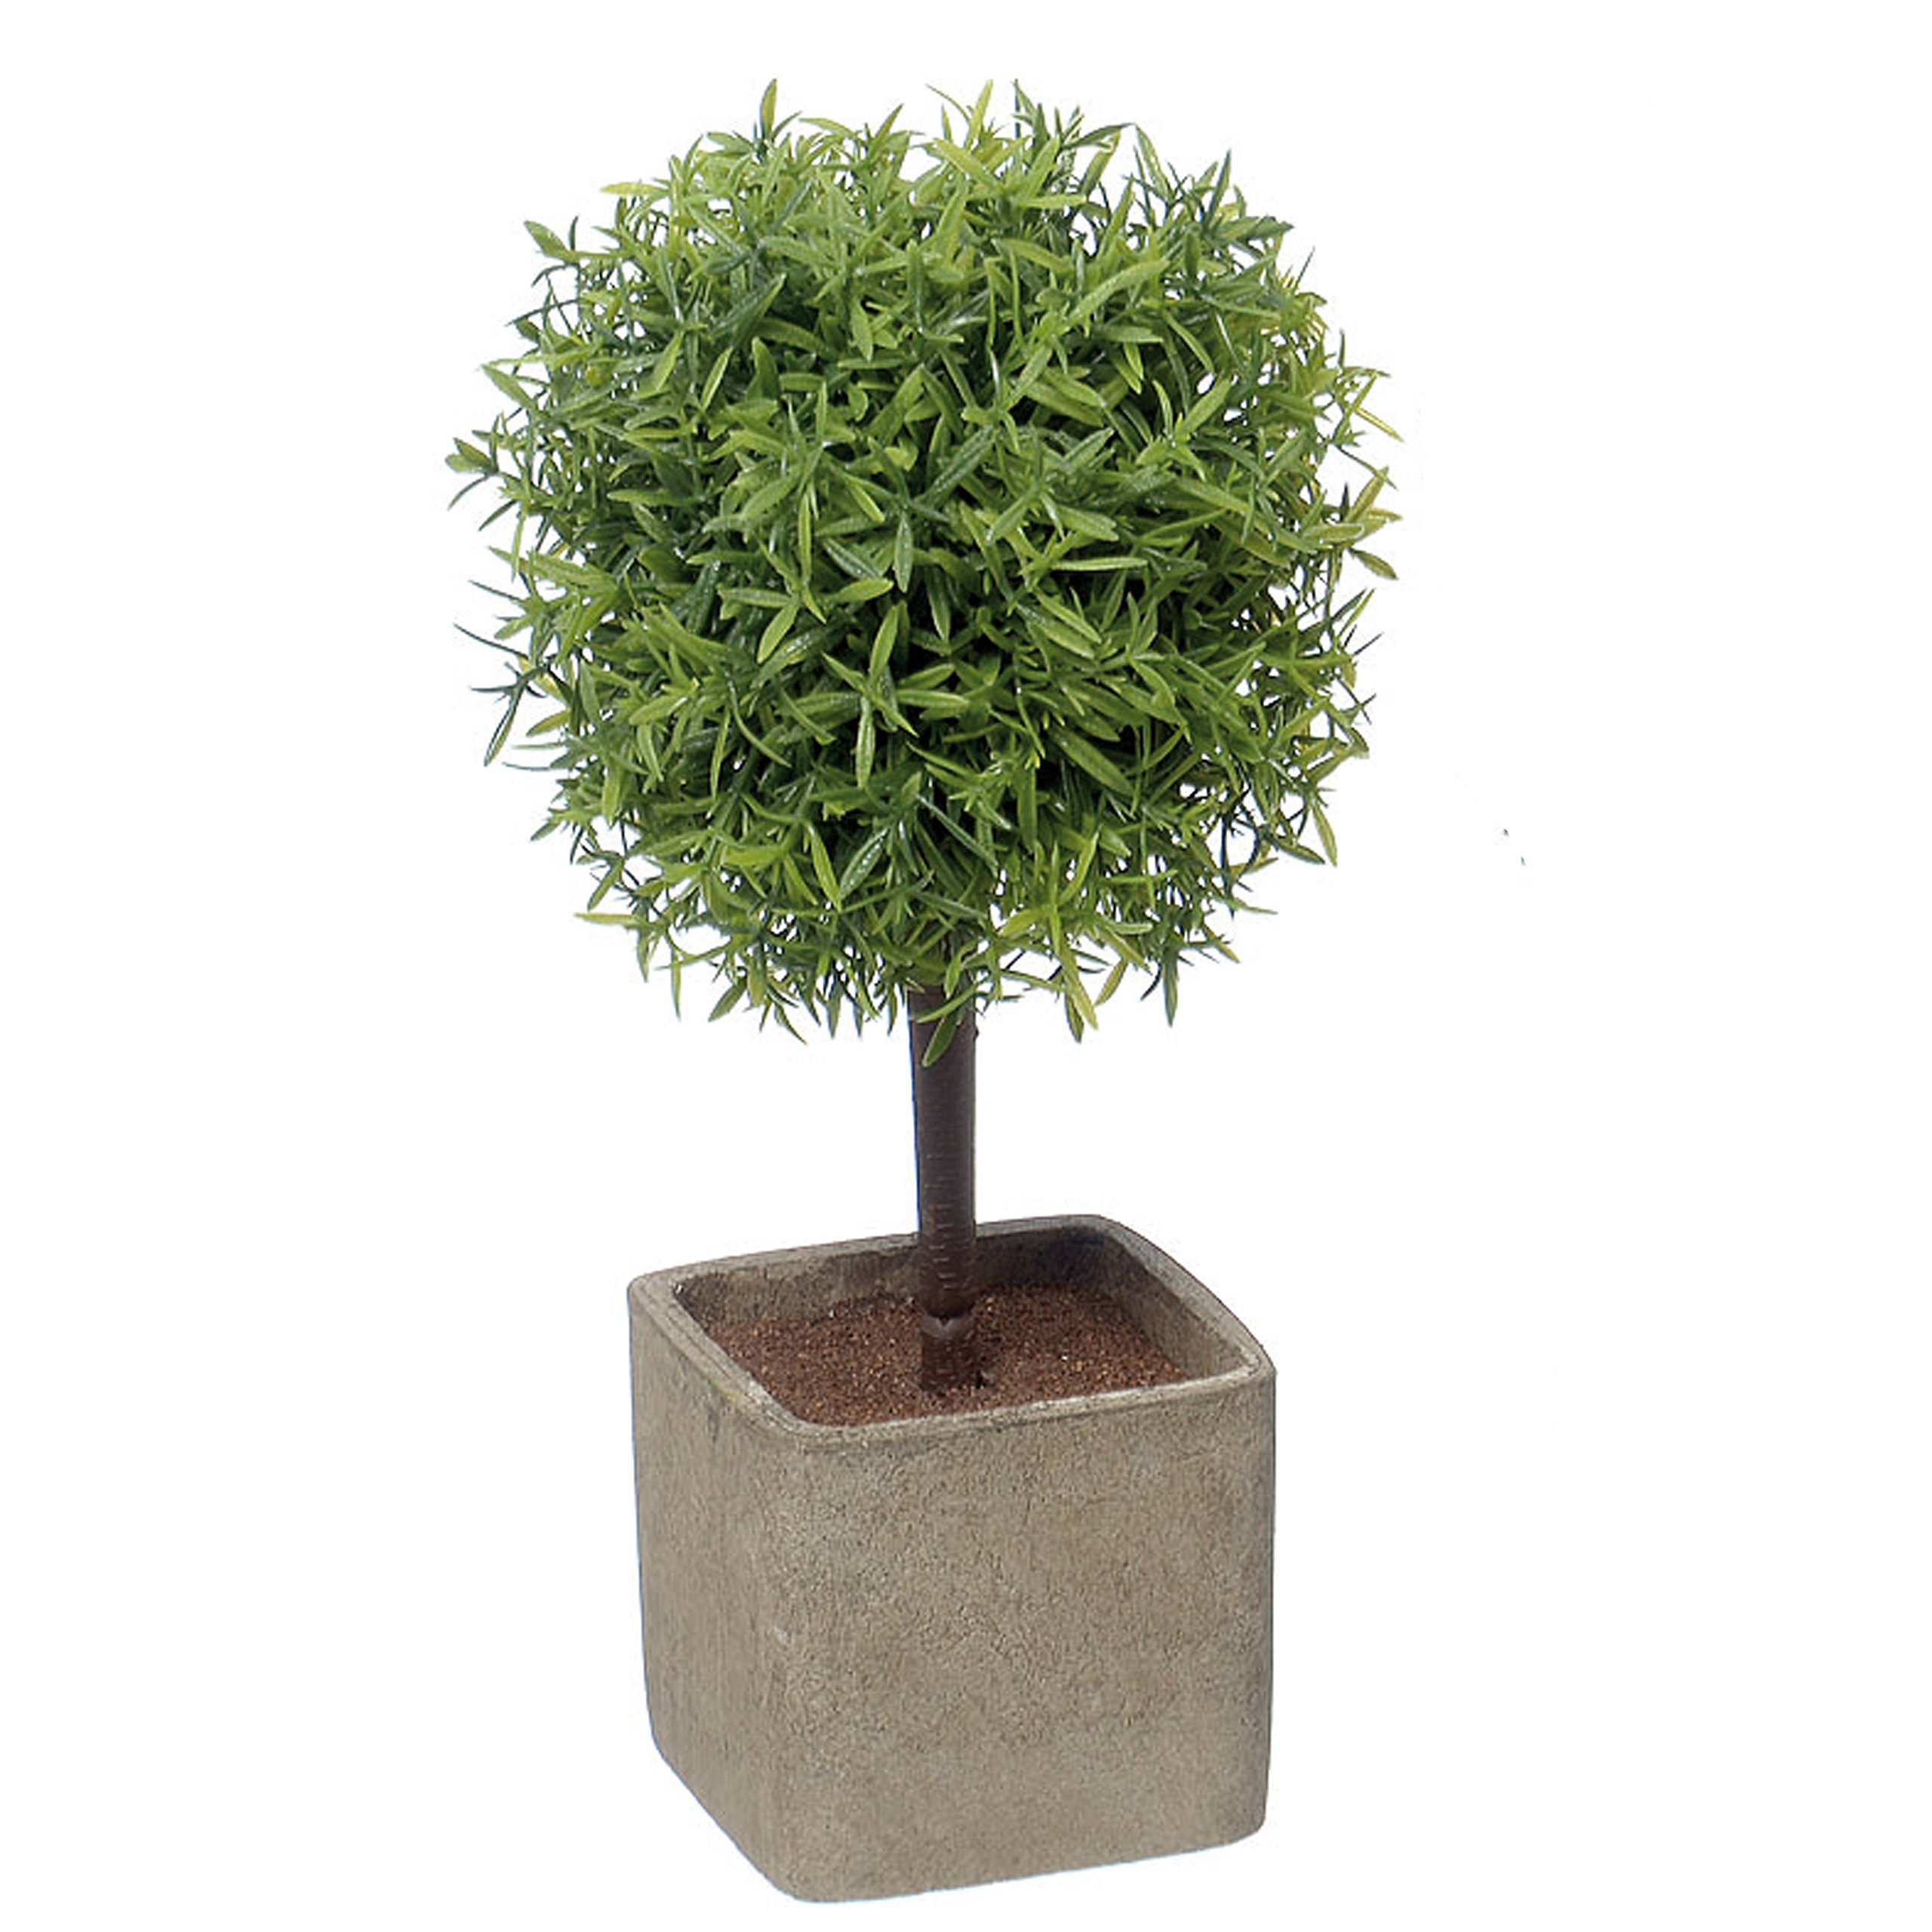 Whole House Worlds The Realistic Mini Faux Potted Grassy Ball Topiary Tree, Gray Stone Finished Planter, 10 1/4 Inches Tall, By